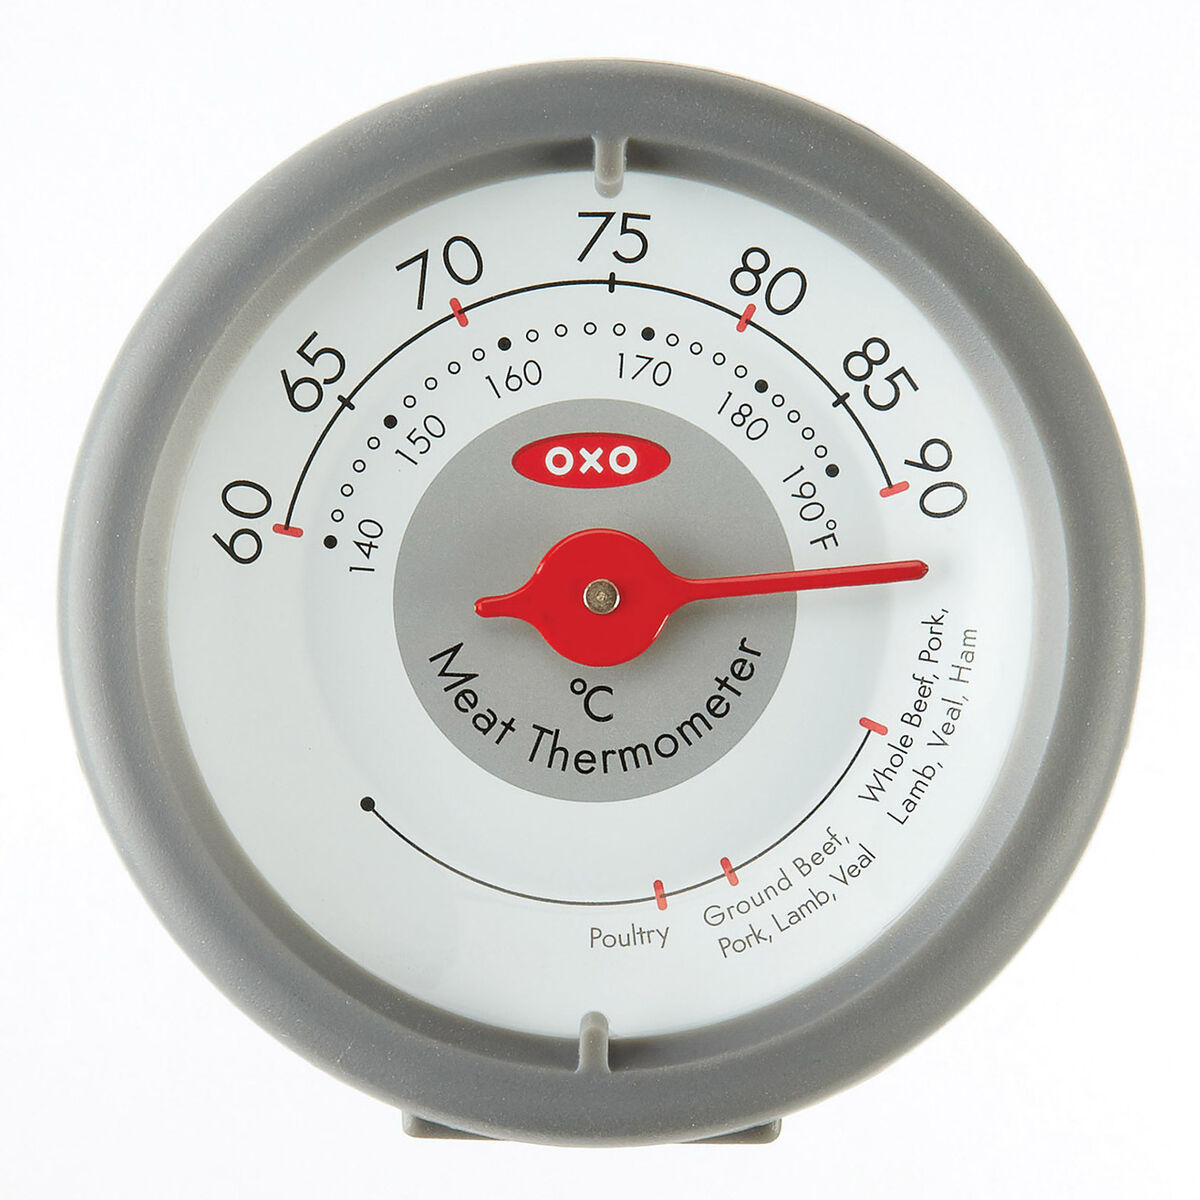 OXO GG ANALOG LEAVE-IN MEAT THERMOMETER